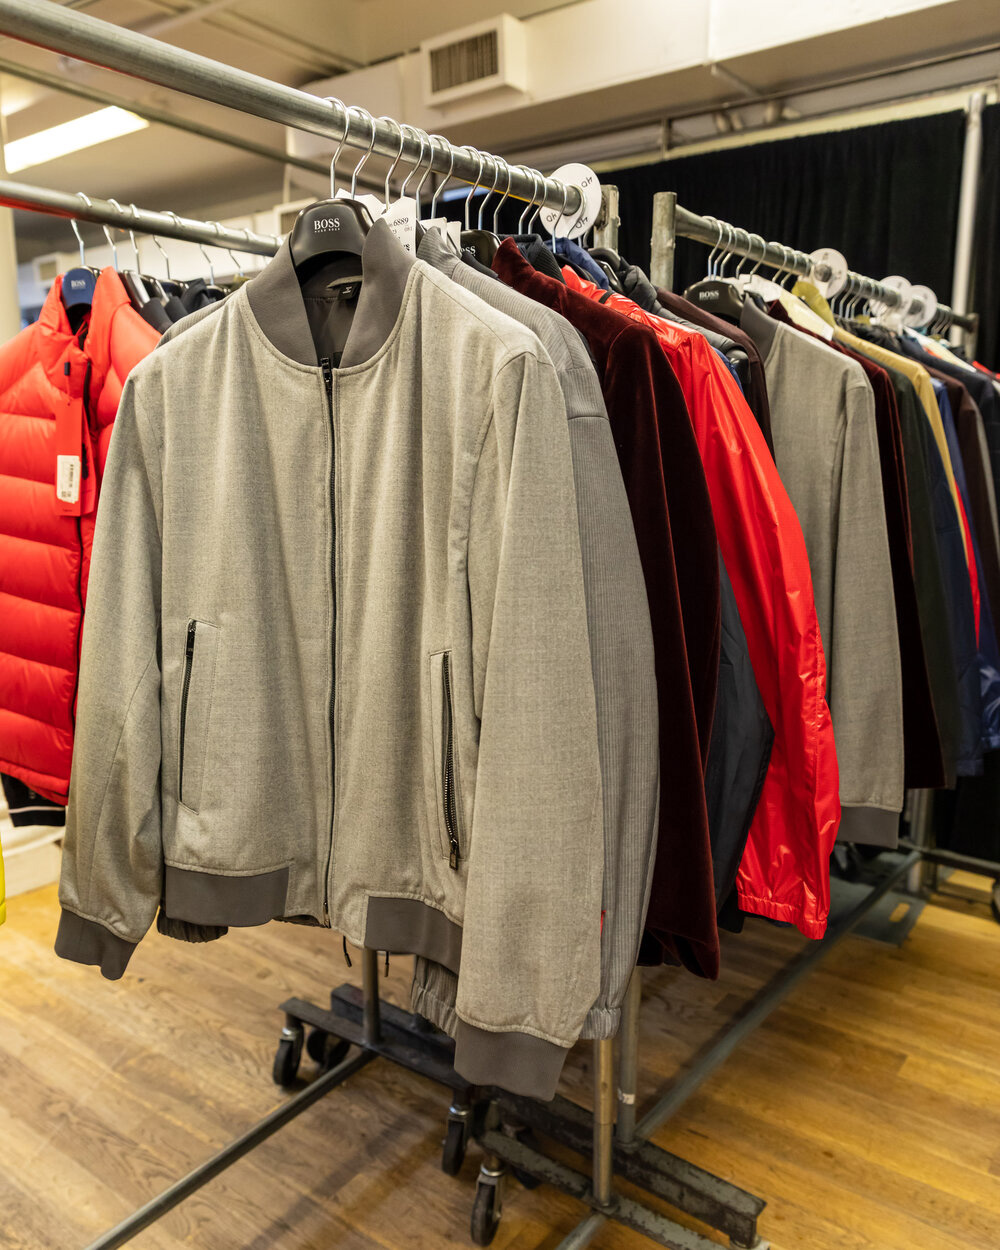 Hugo Boss Sample Sale in Images